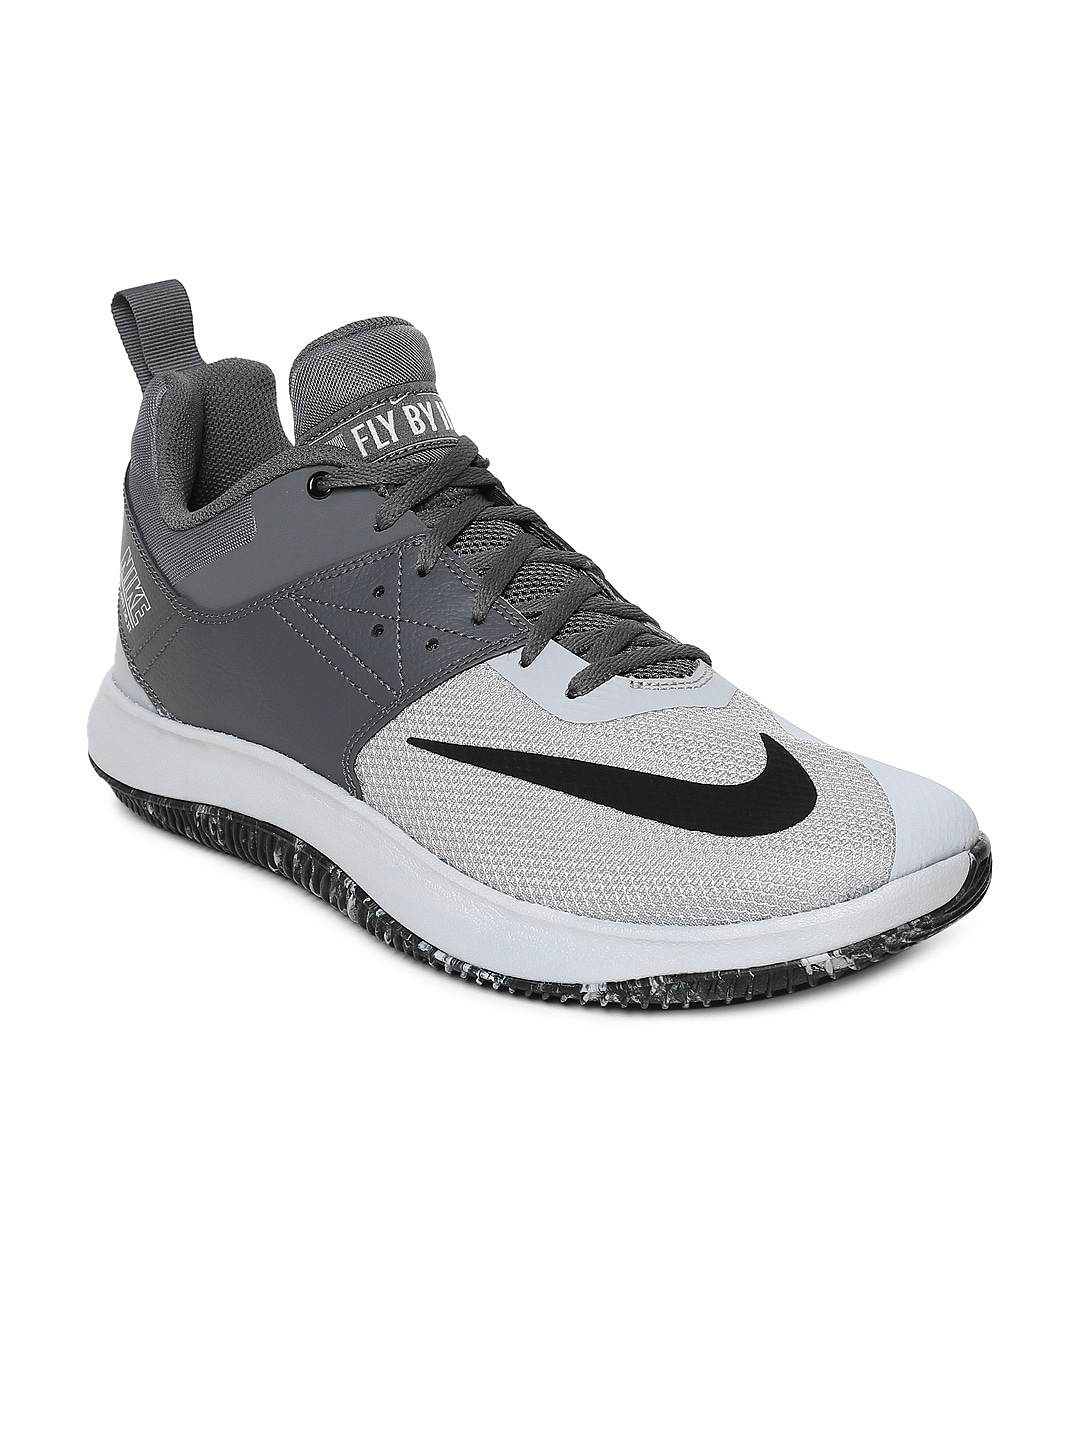 timeless design b1328 edcf6 Nike Shoes - Buy Nike Shoes for Men, Women   Kids Online   Myntra